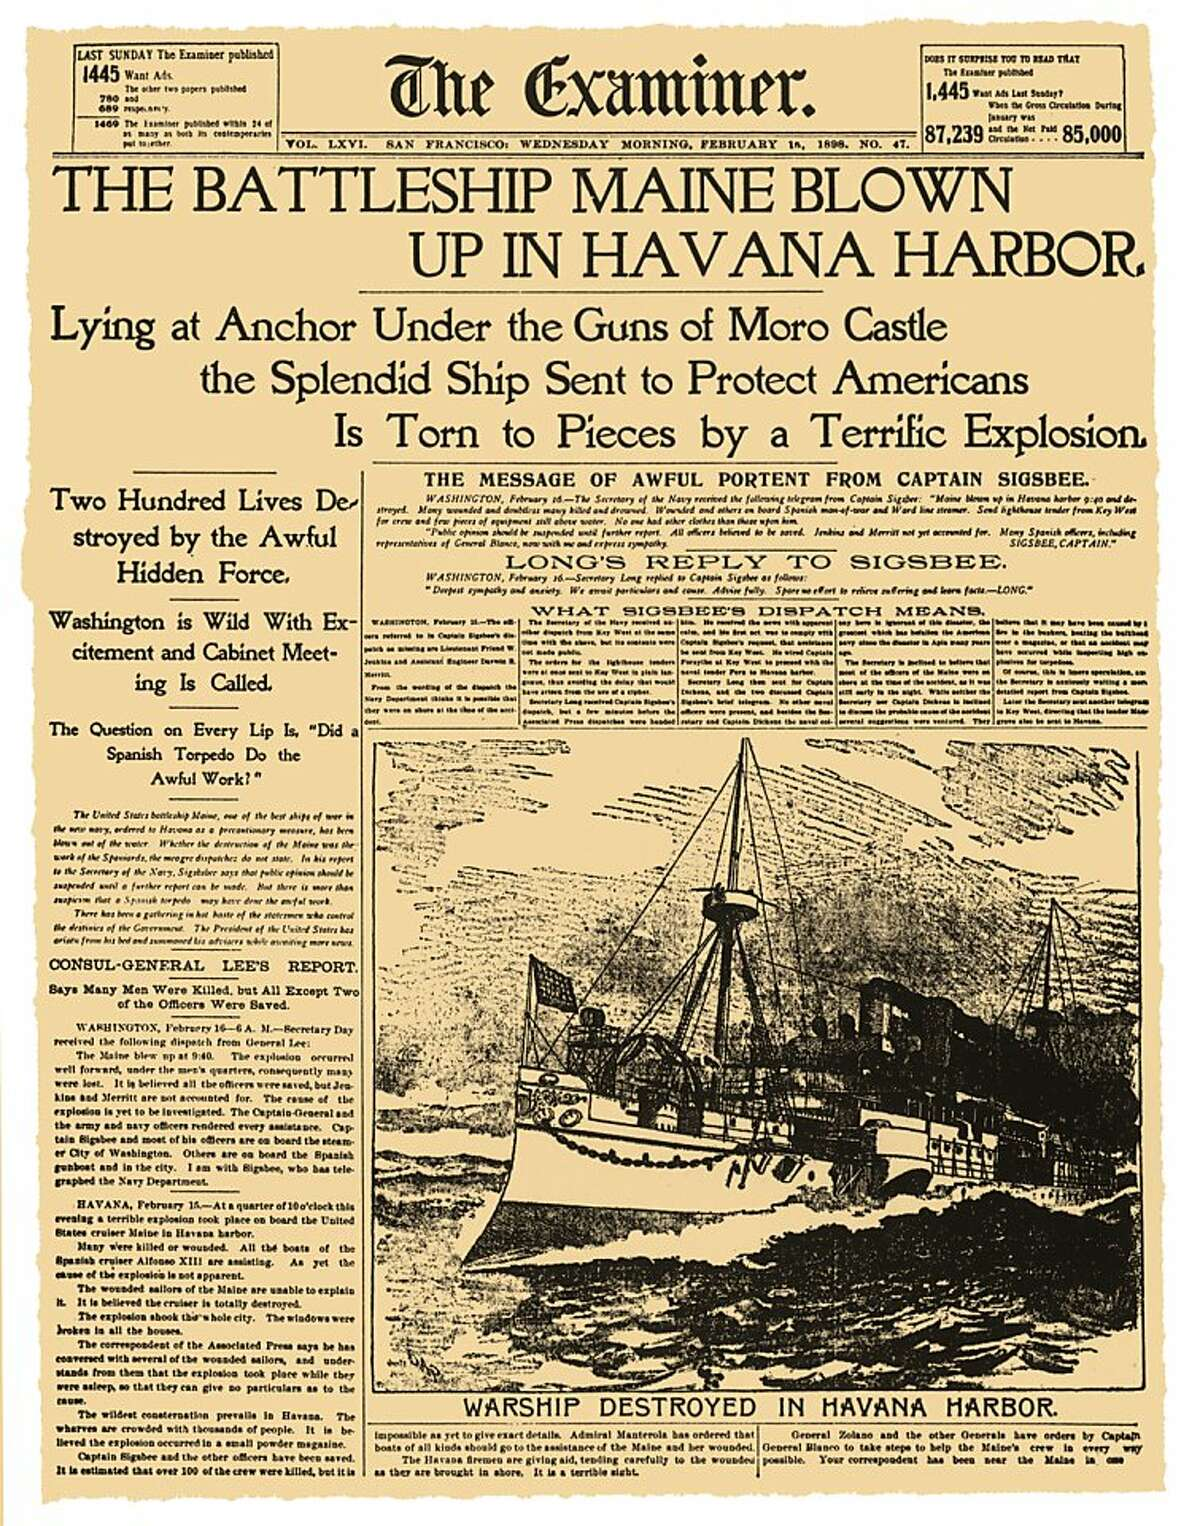 Front page of February 16, 1896 San Francisco Examiner, reporting the sinking of the battleship, Maine.